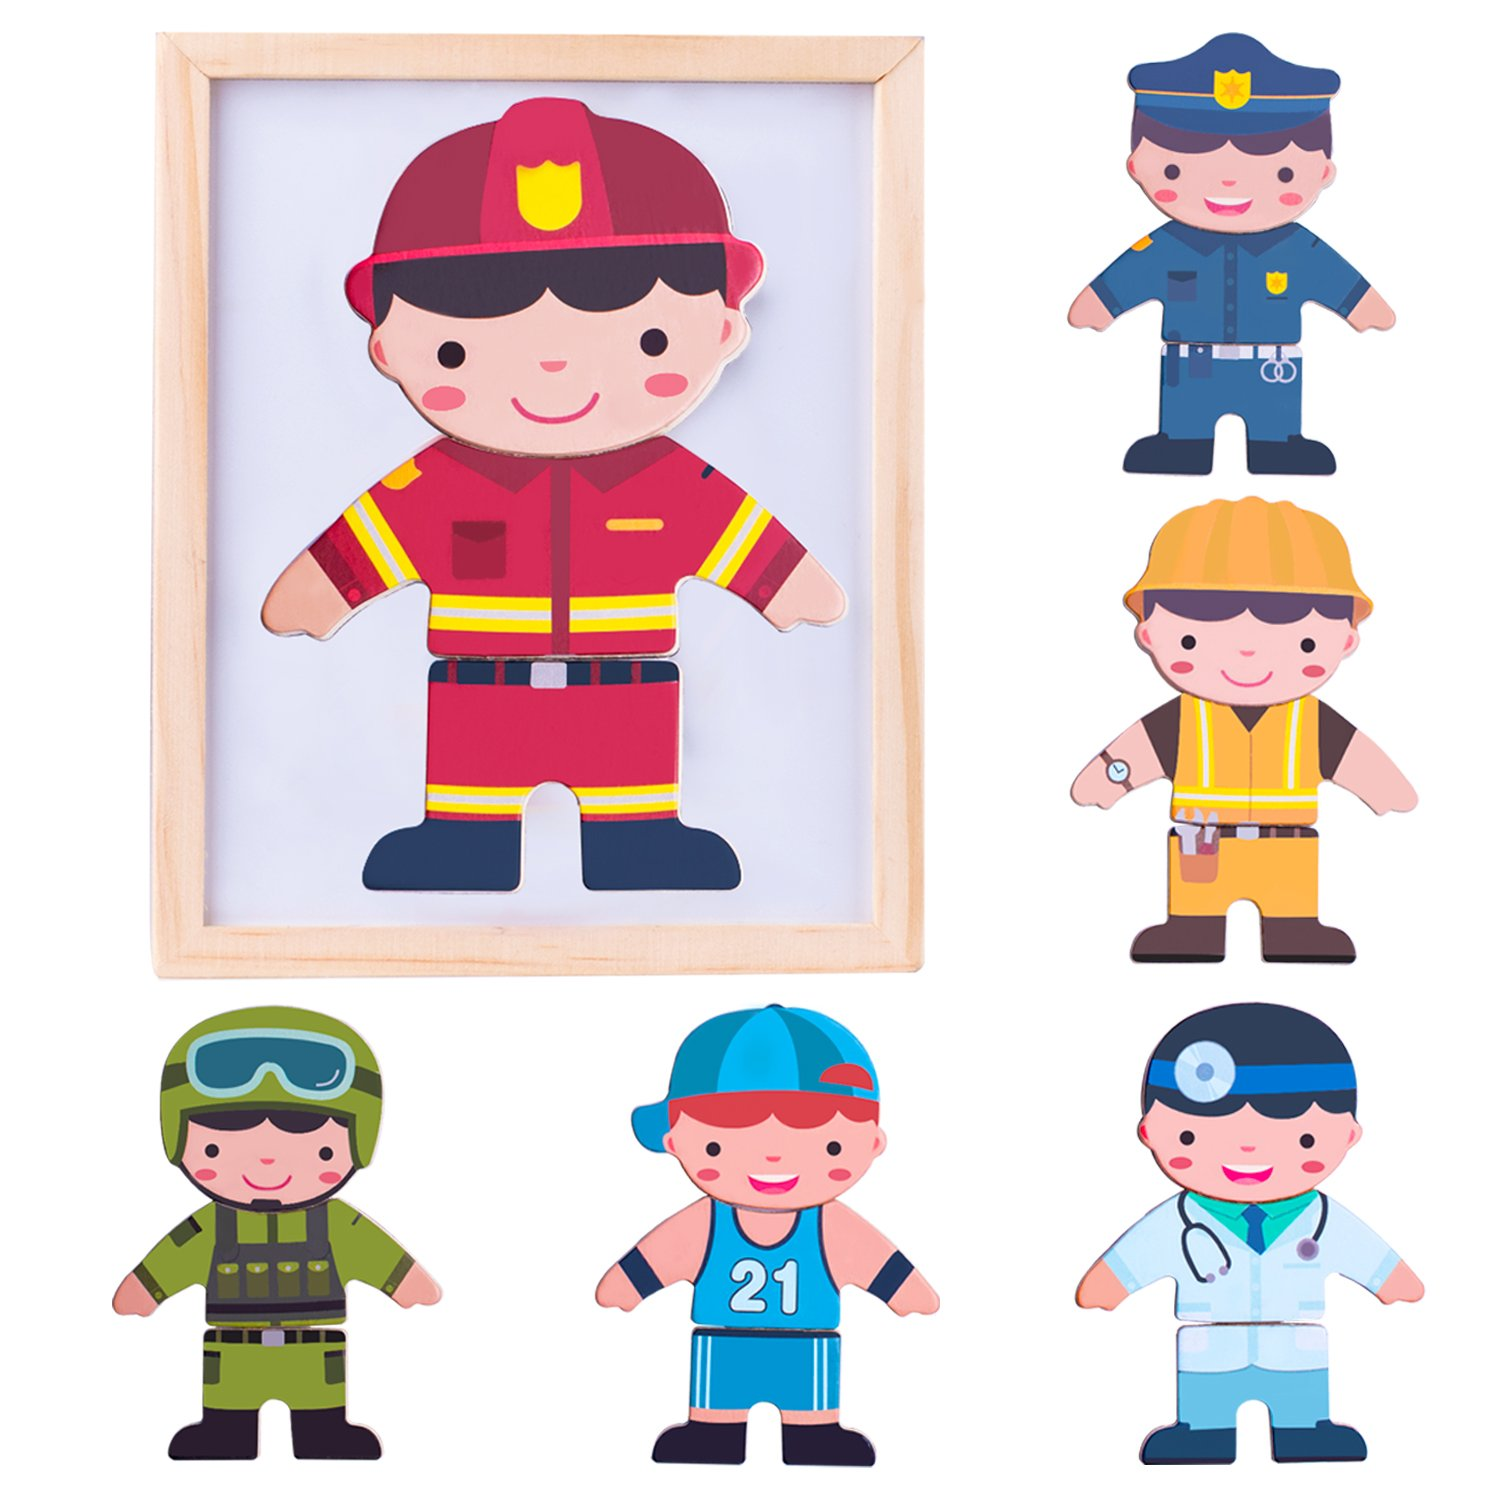 iPlay, iLearn Magnetic Wooden Dolls, Pretend Play Mix & Match It, Fun'n Cool Dress Up, Career Jigsaw Puzzle Toys, Fireman, Fridge Magnets, Educational Gift for 3, 4 Year Olds, Kids, Boys, Girls